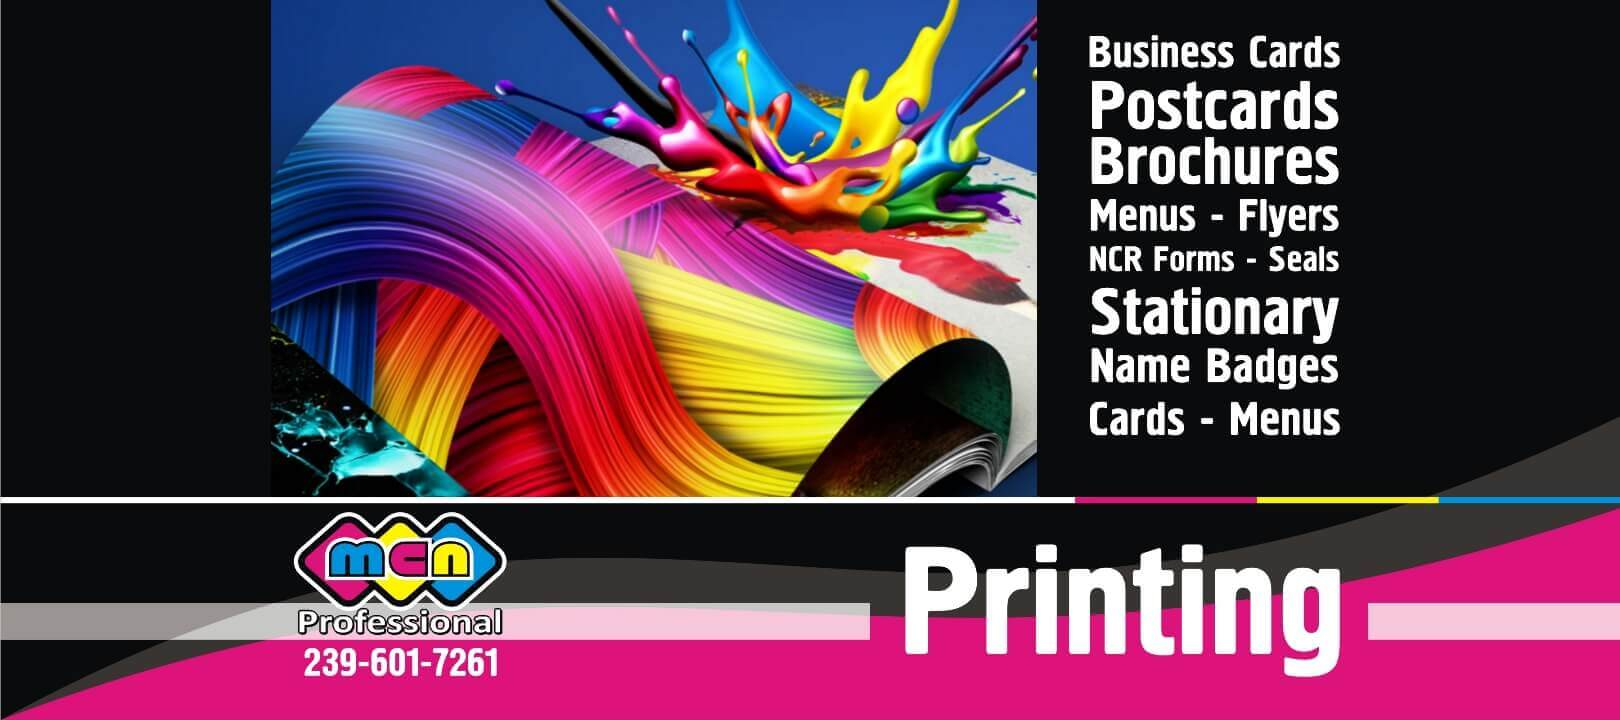 A Business Card Printing